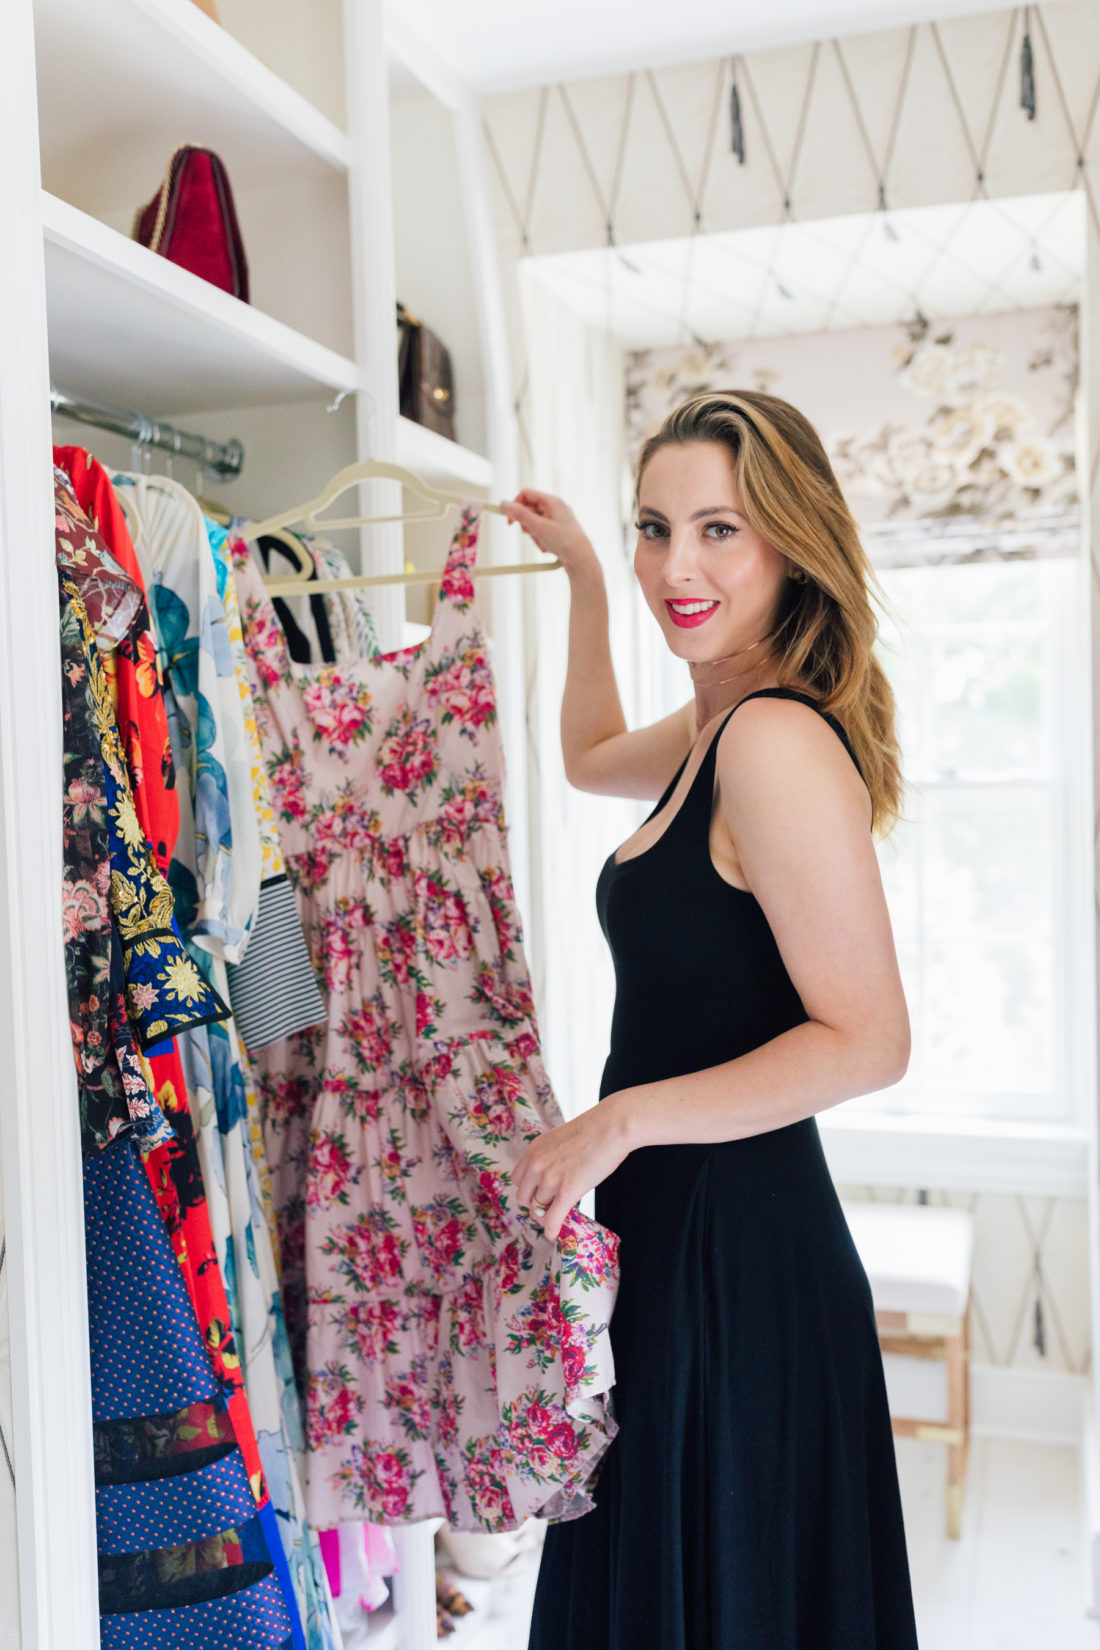 Eva Amurri Martino pulls out dresses for her trip to Italy